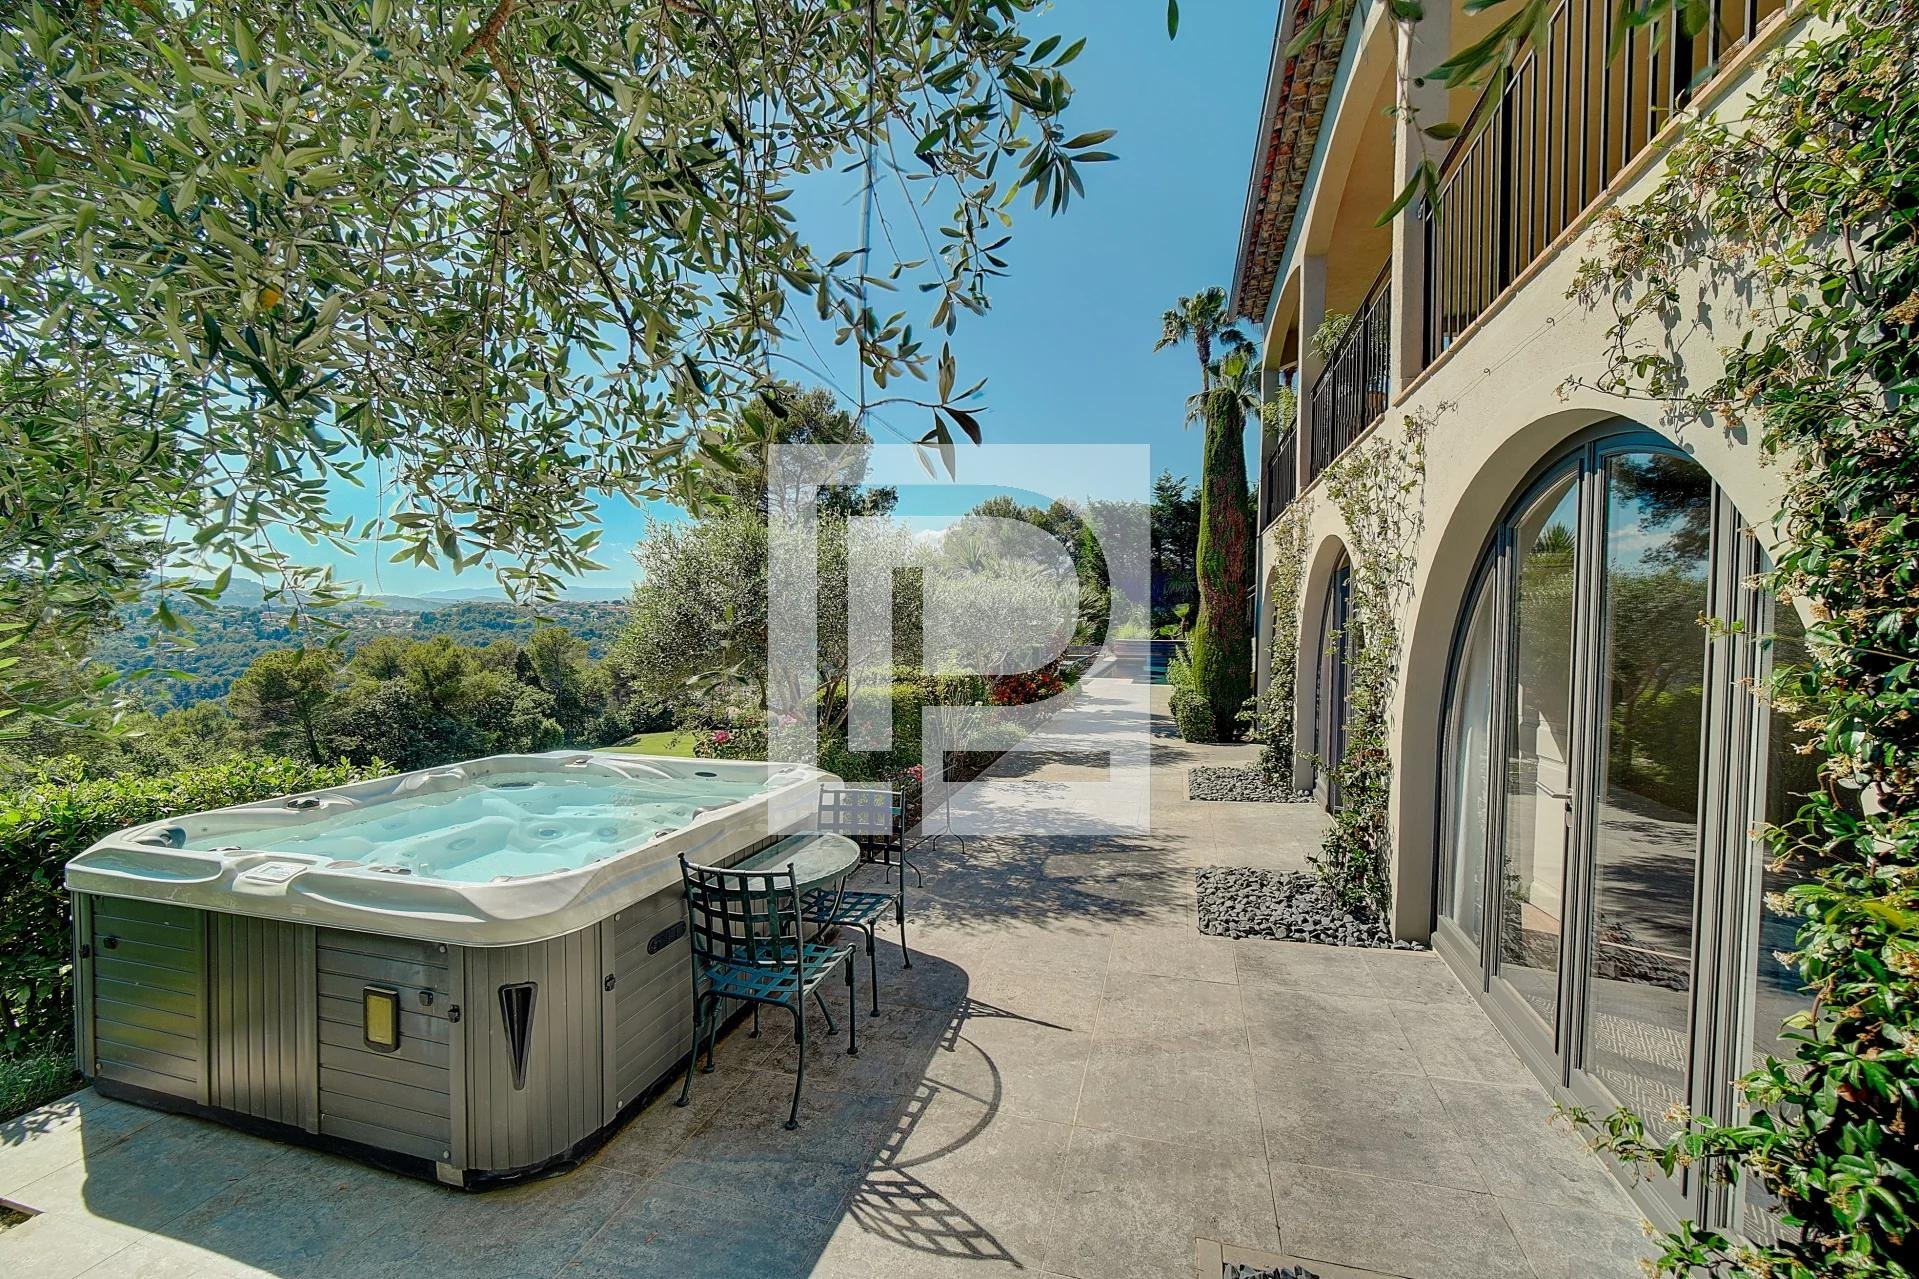 Charming property with panoramic views in Domaine Sécurisé